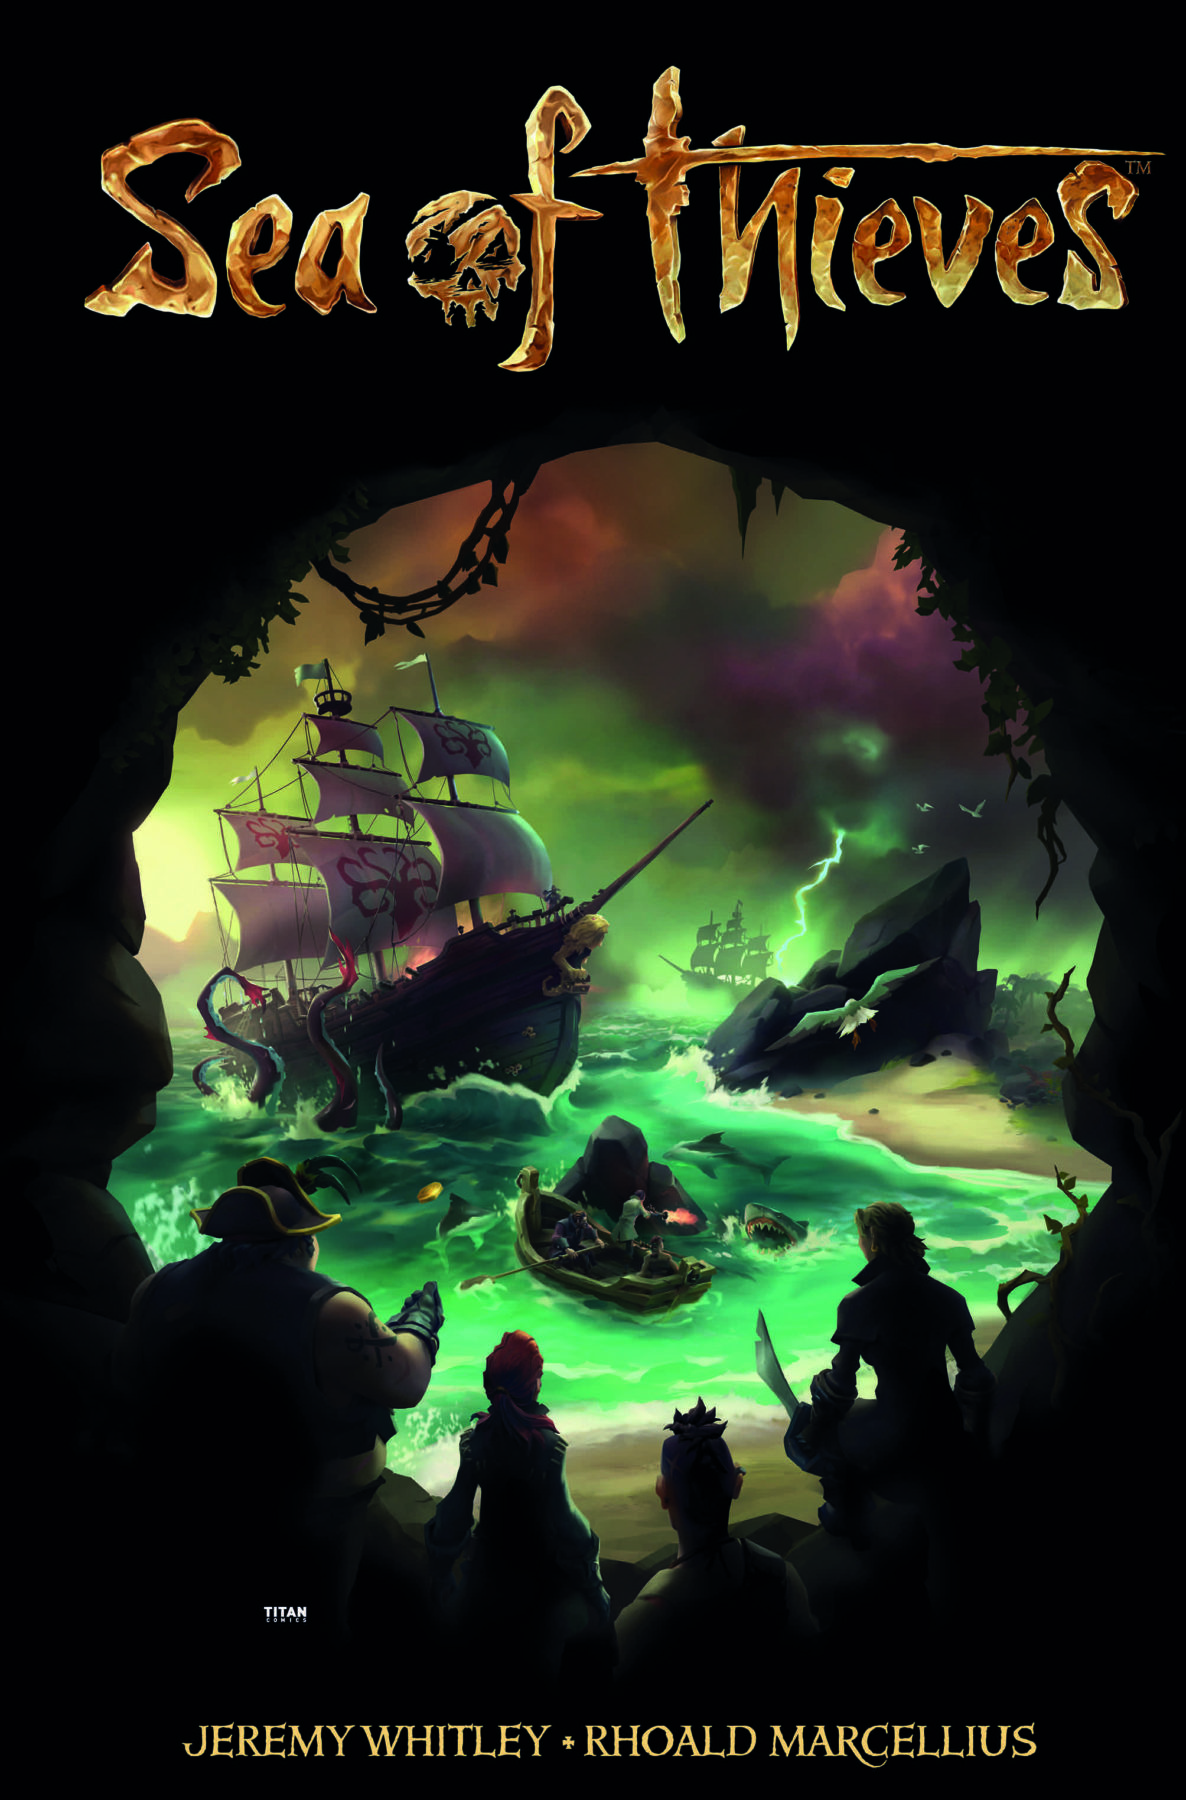 El cómic de Sea of ​​Thieves zarpa por cortesía de Titán